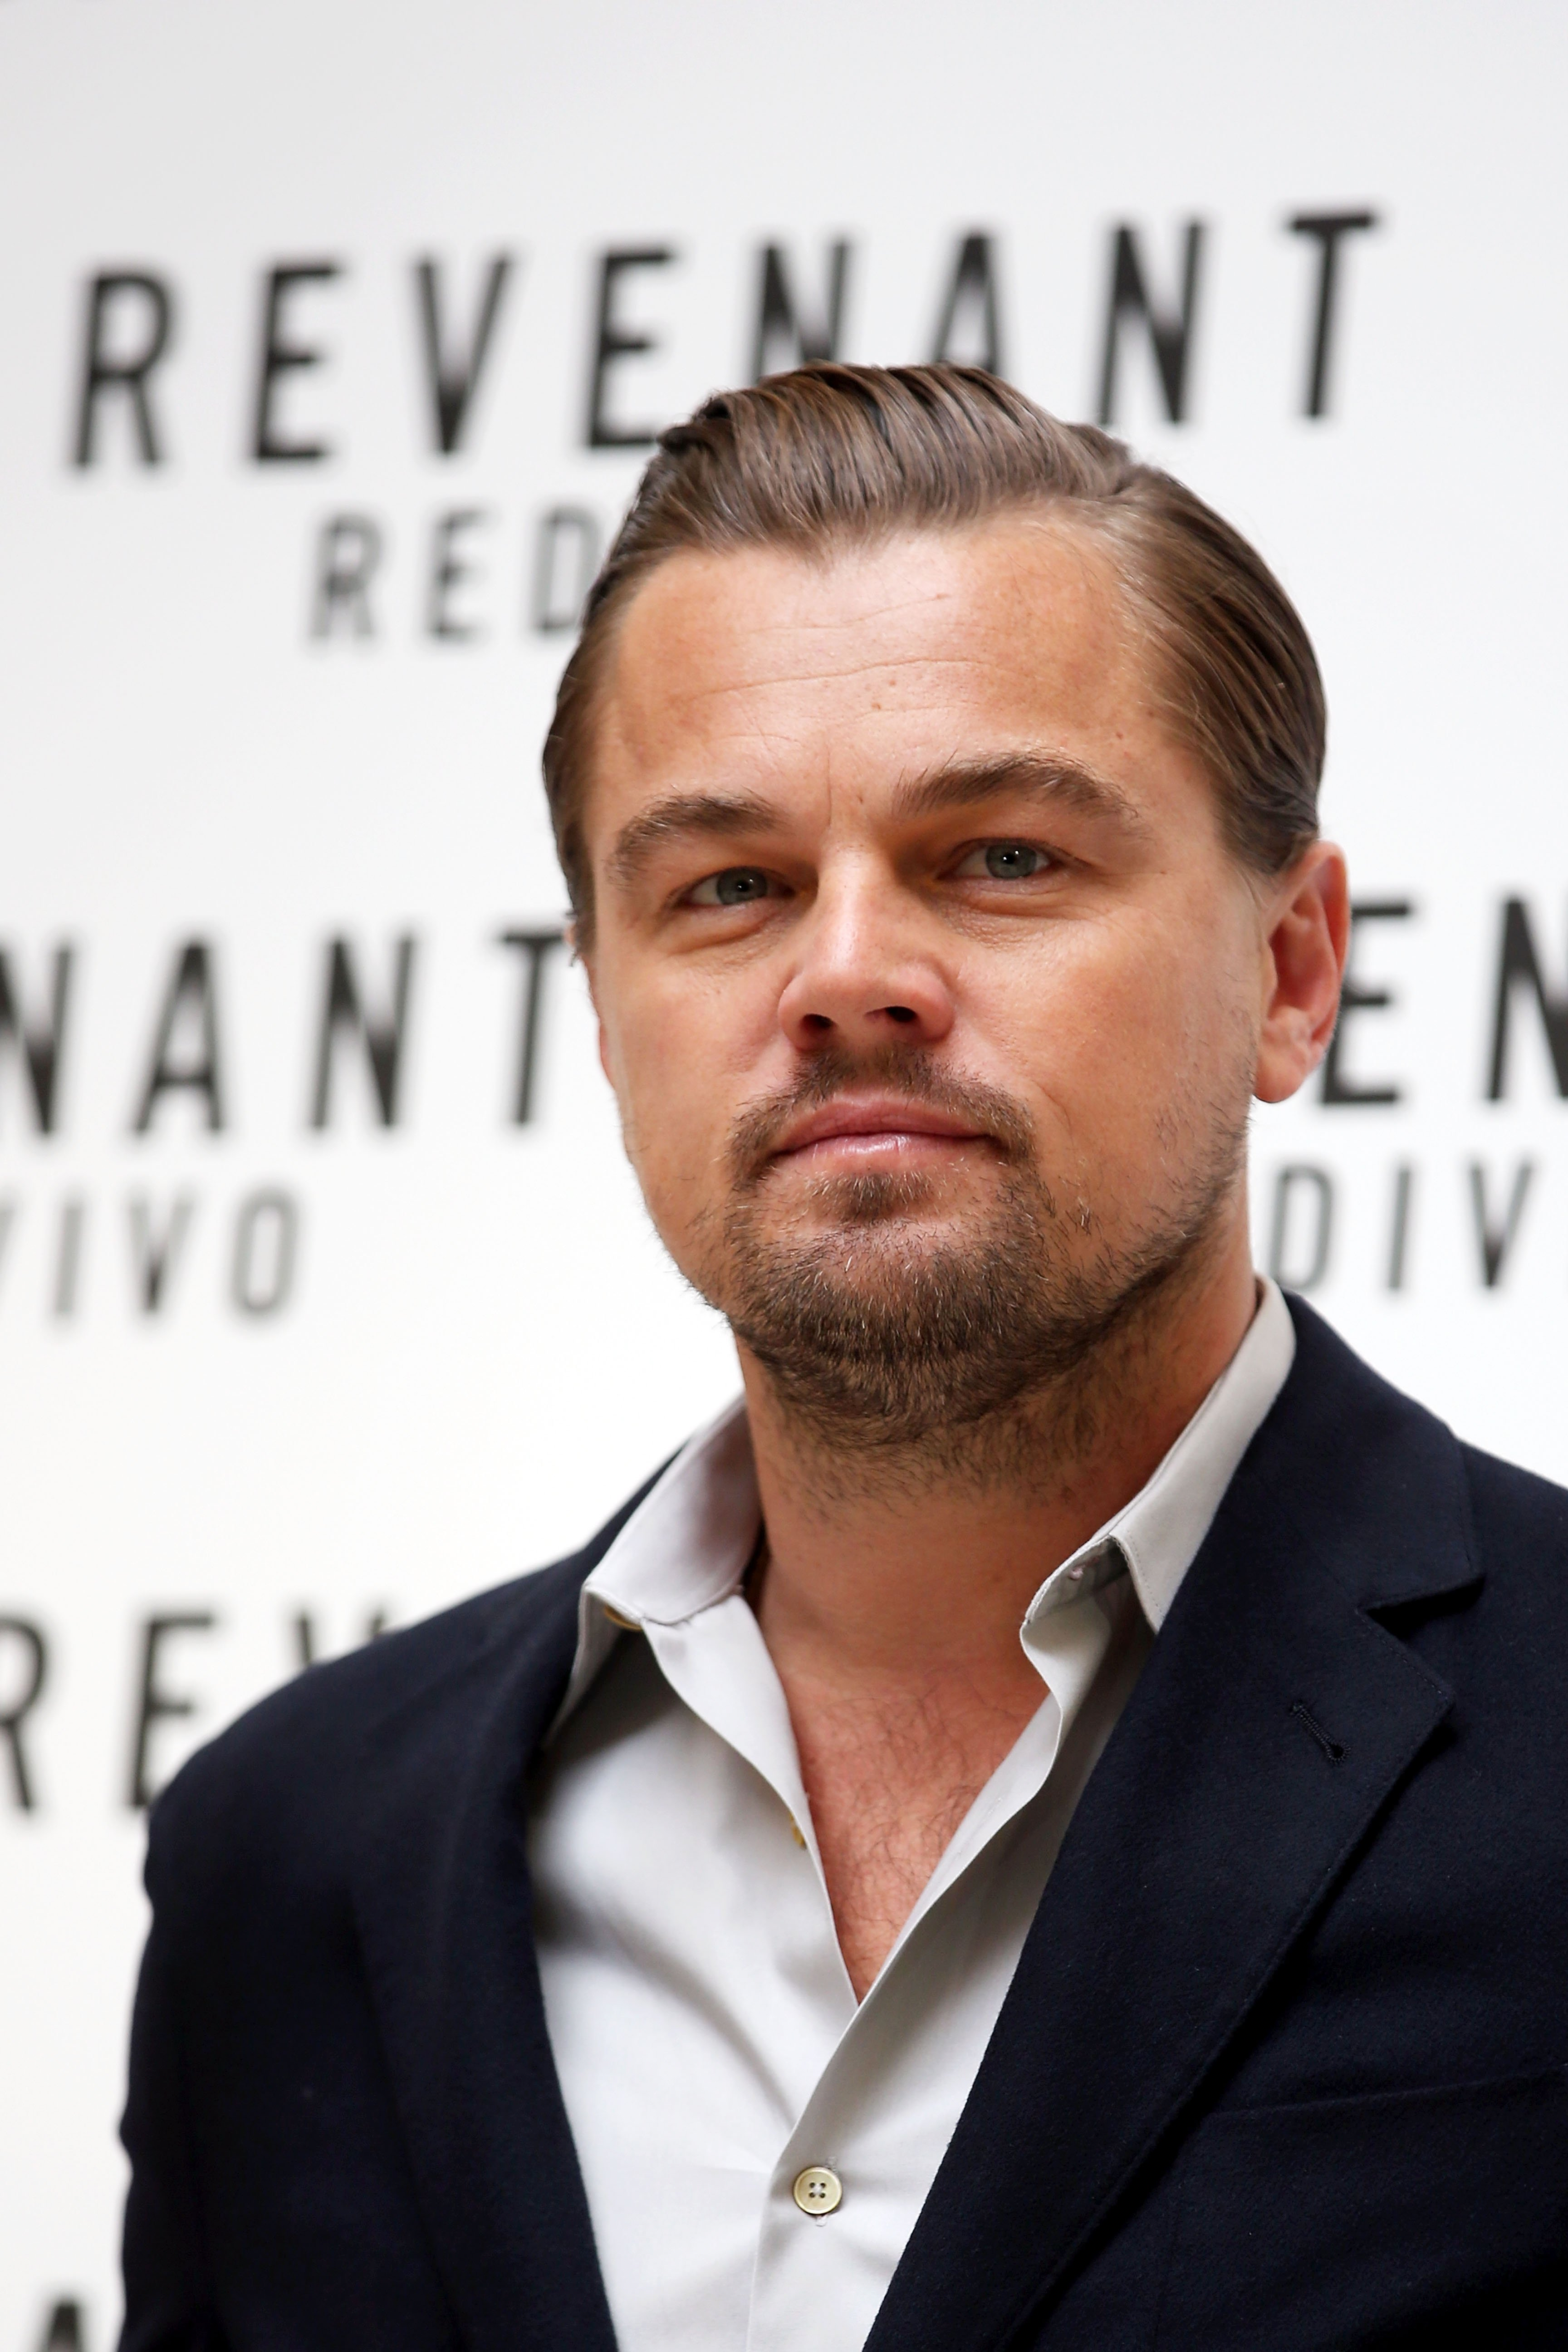 Image Credits: Getty Images / Franco Origlia | Leonardo DiCaprio attends a photocall for 'The Revenant' on January 16, 2016 in Rome, Italy.